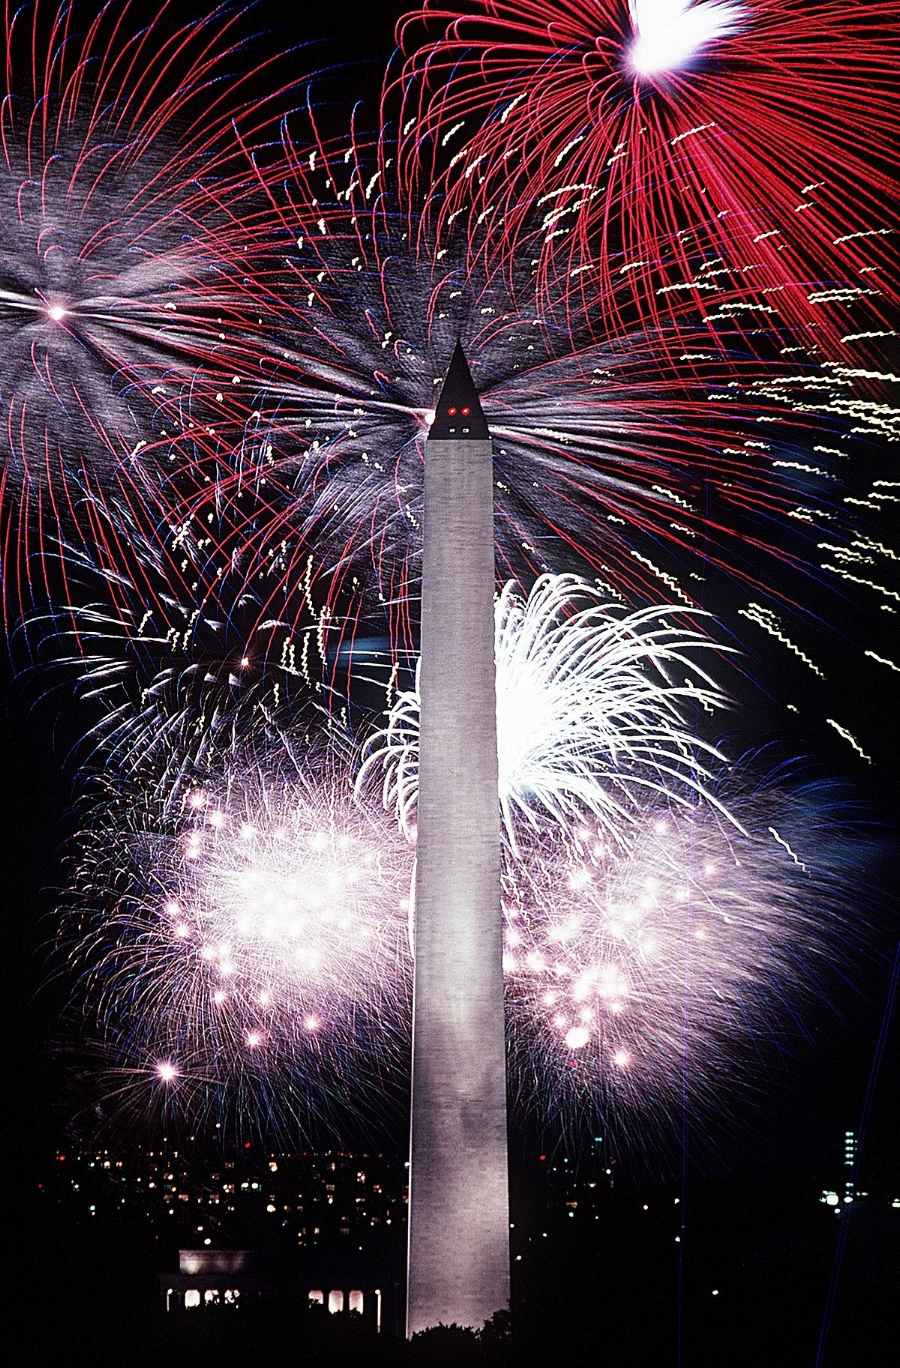 Fourth_of_July_fireworks_behind_the_Washington_Monument,_1986.jpg